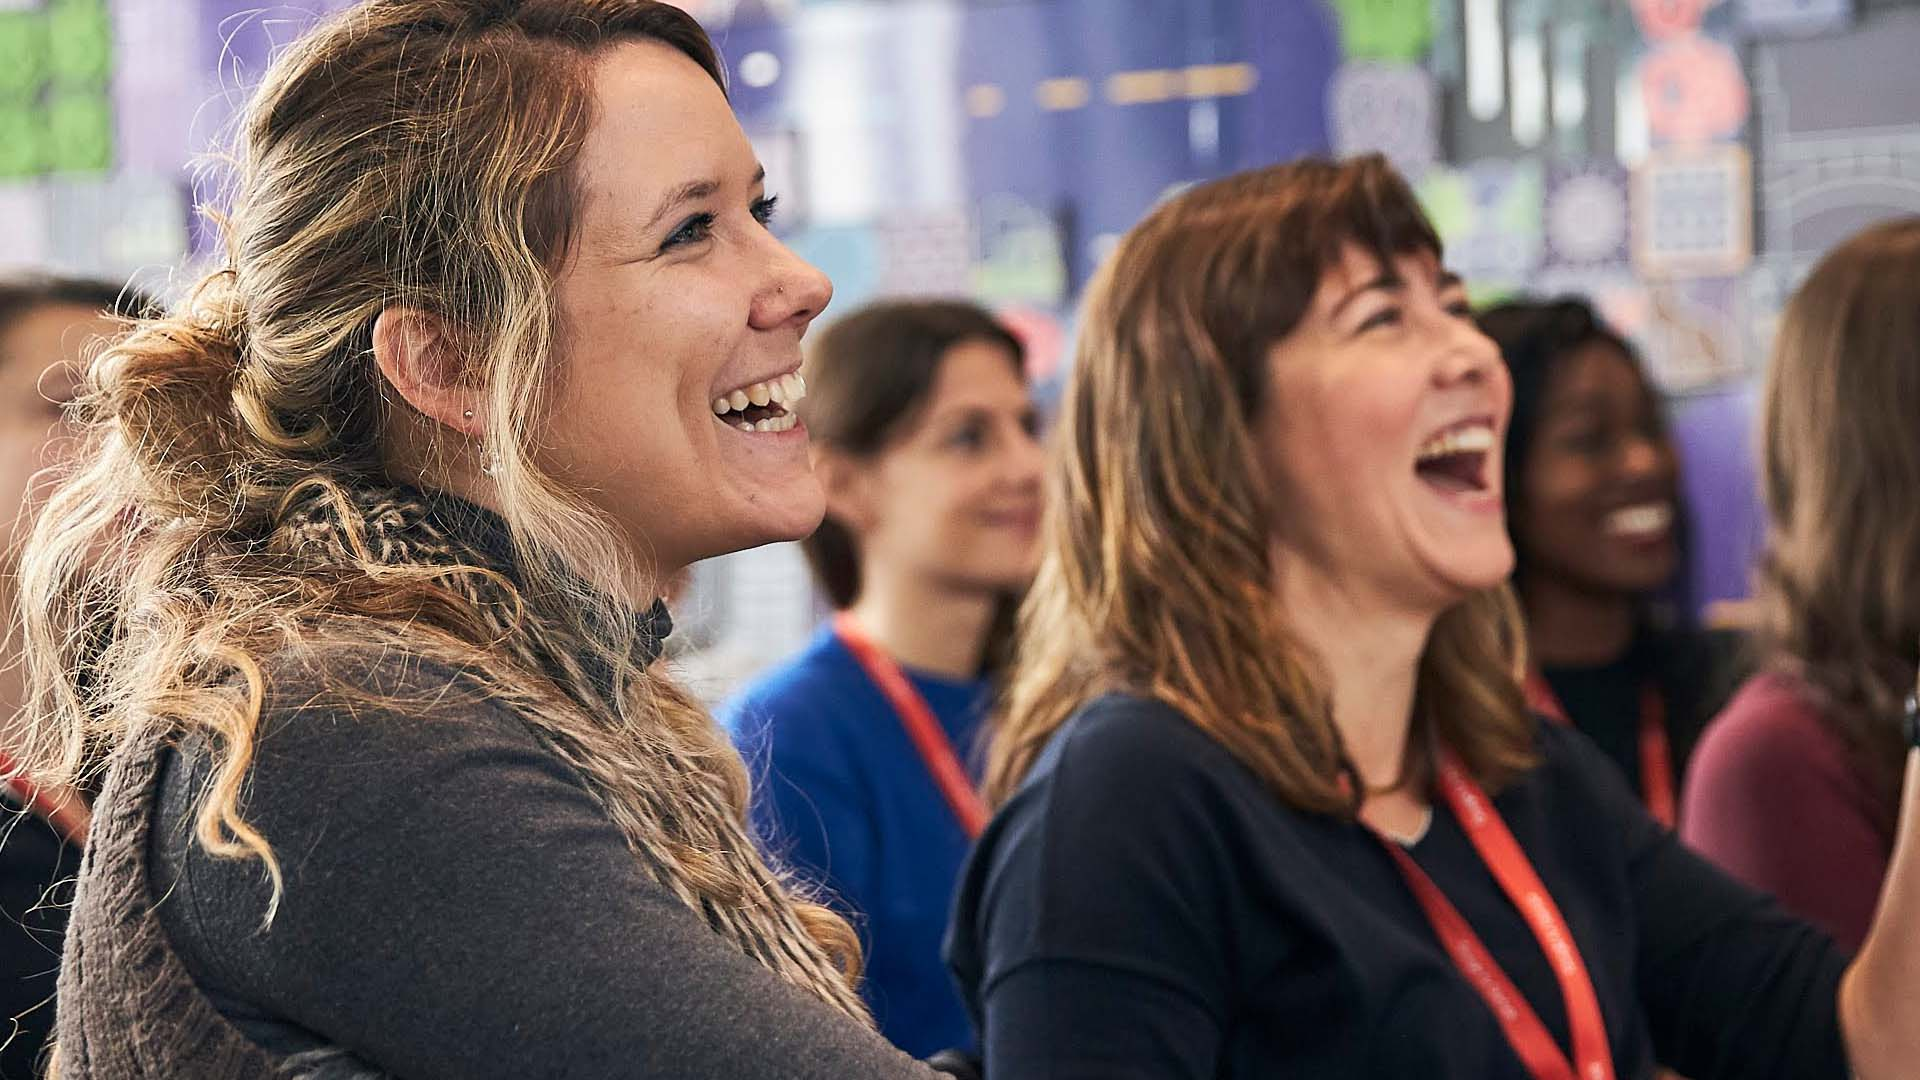 2 women in a conference, laughing